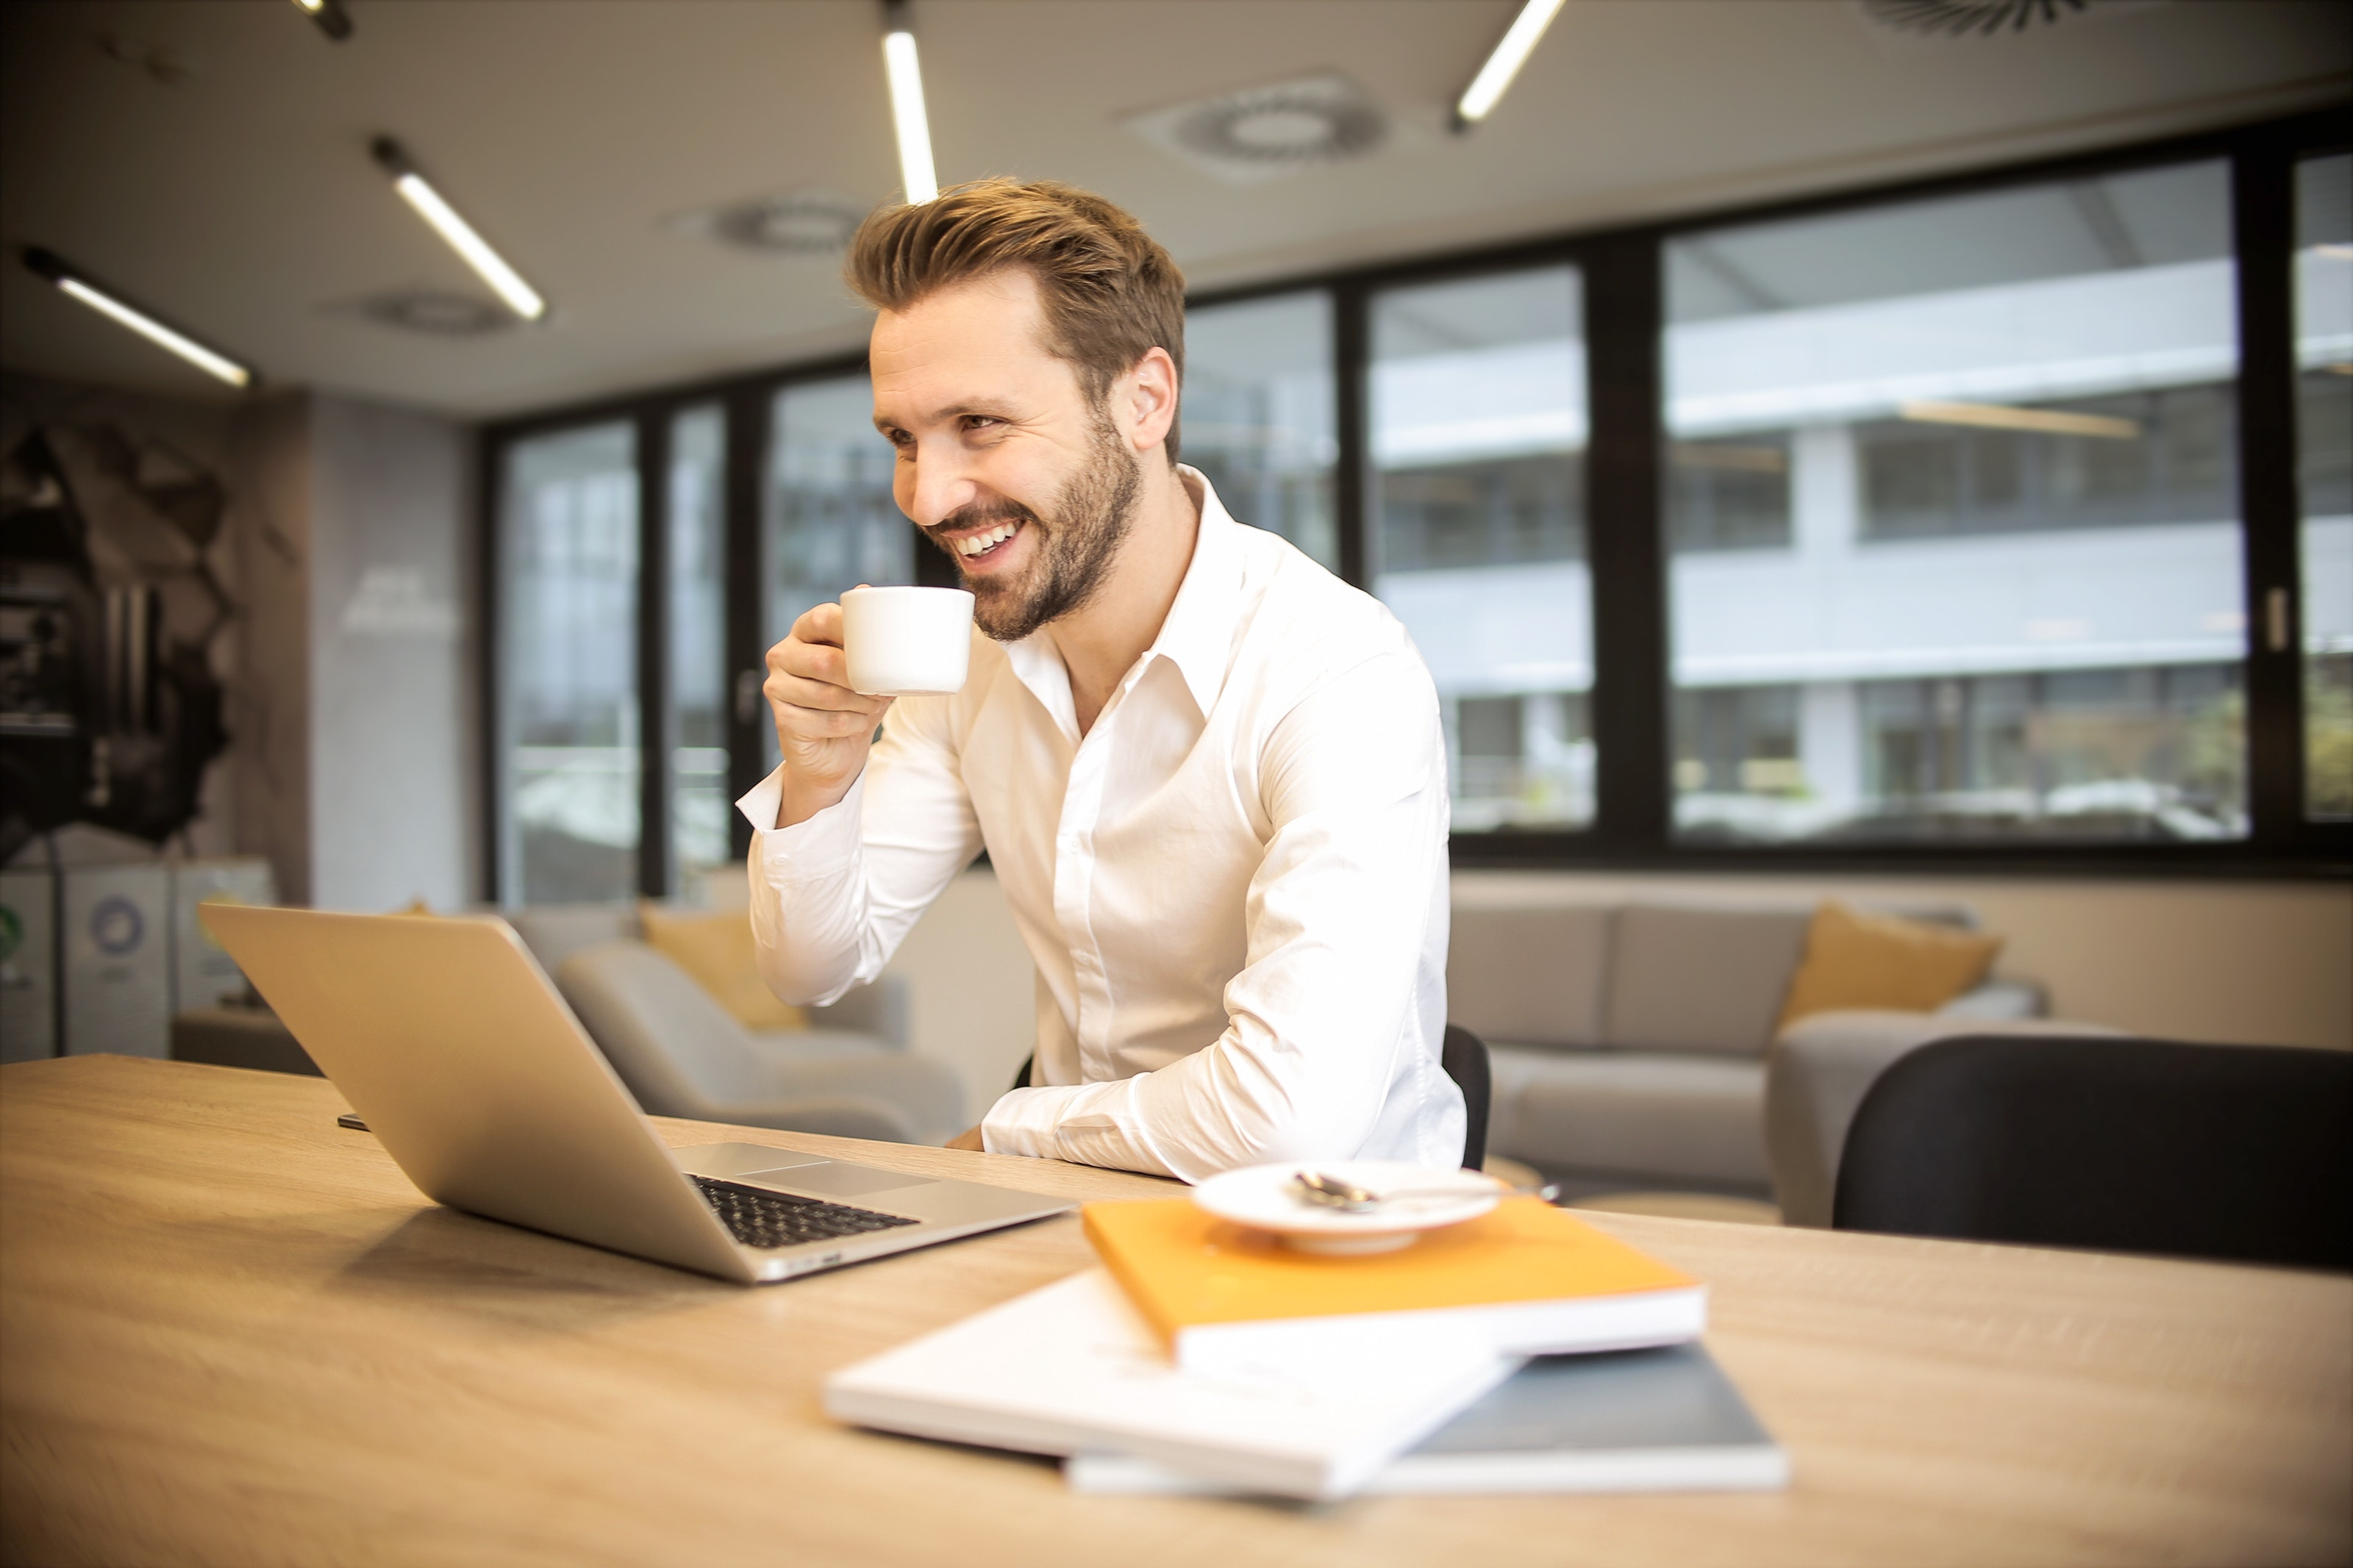 Man drinking coffee and smiling while looking at his computer